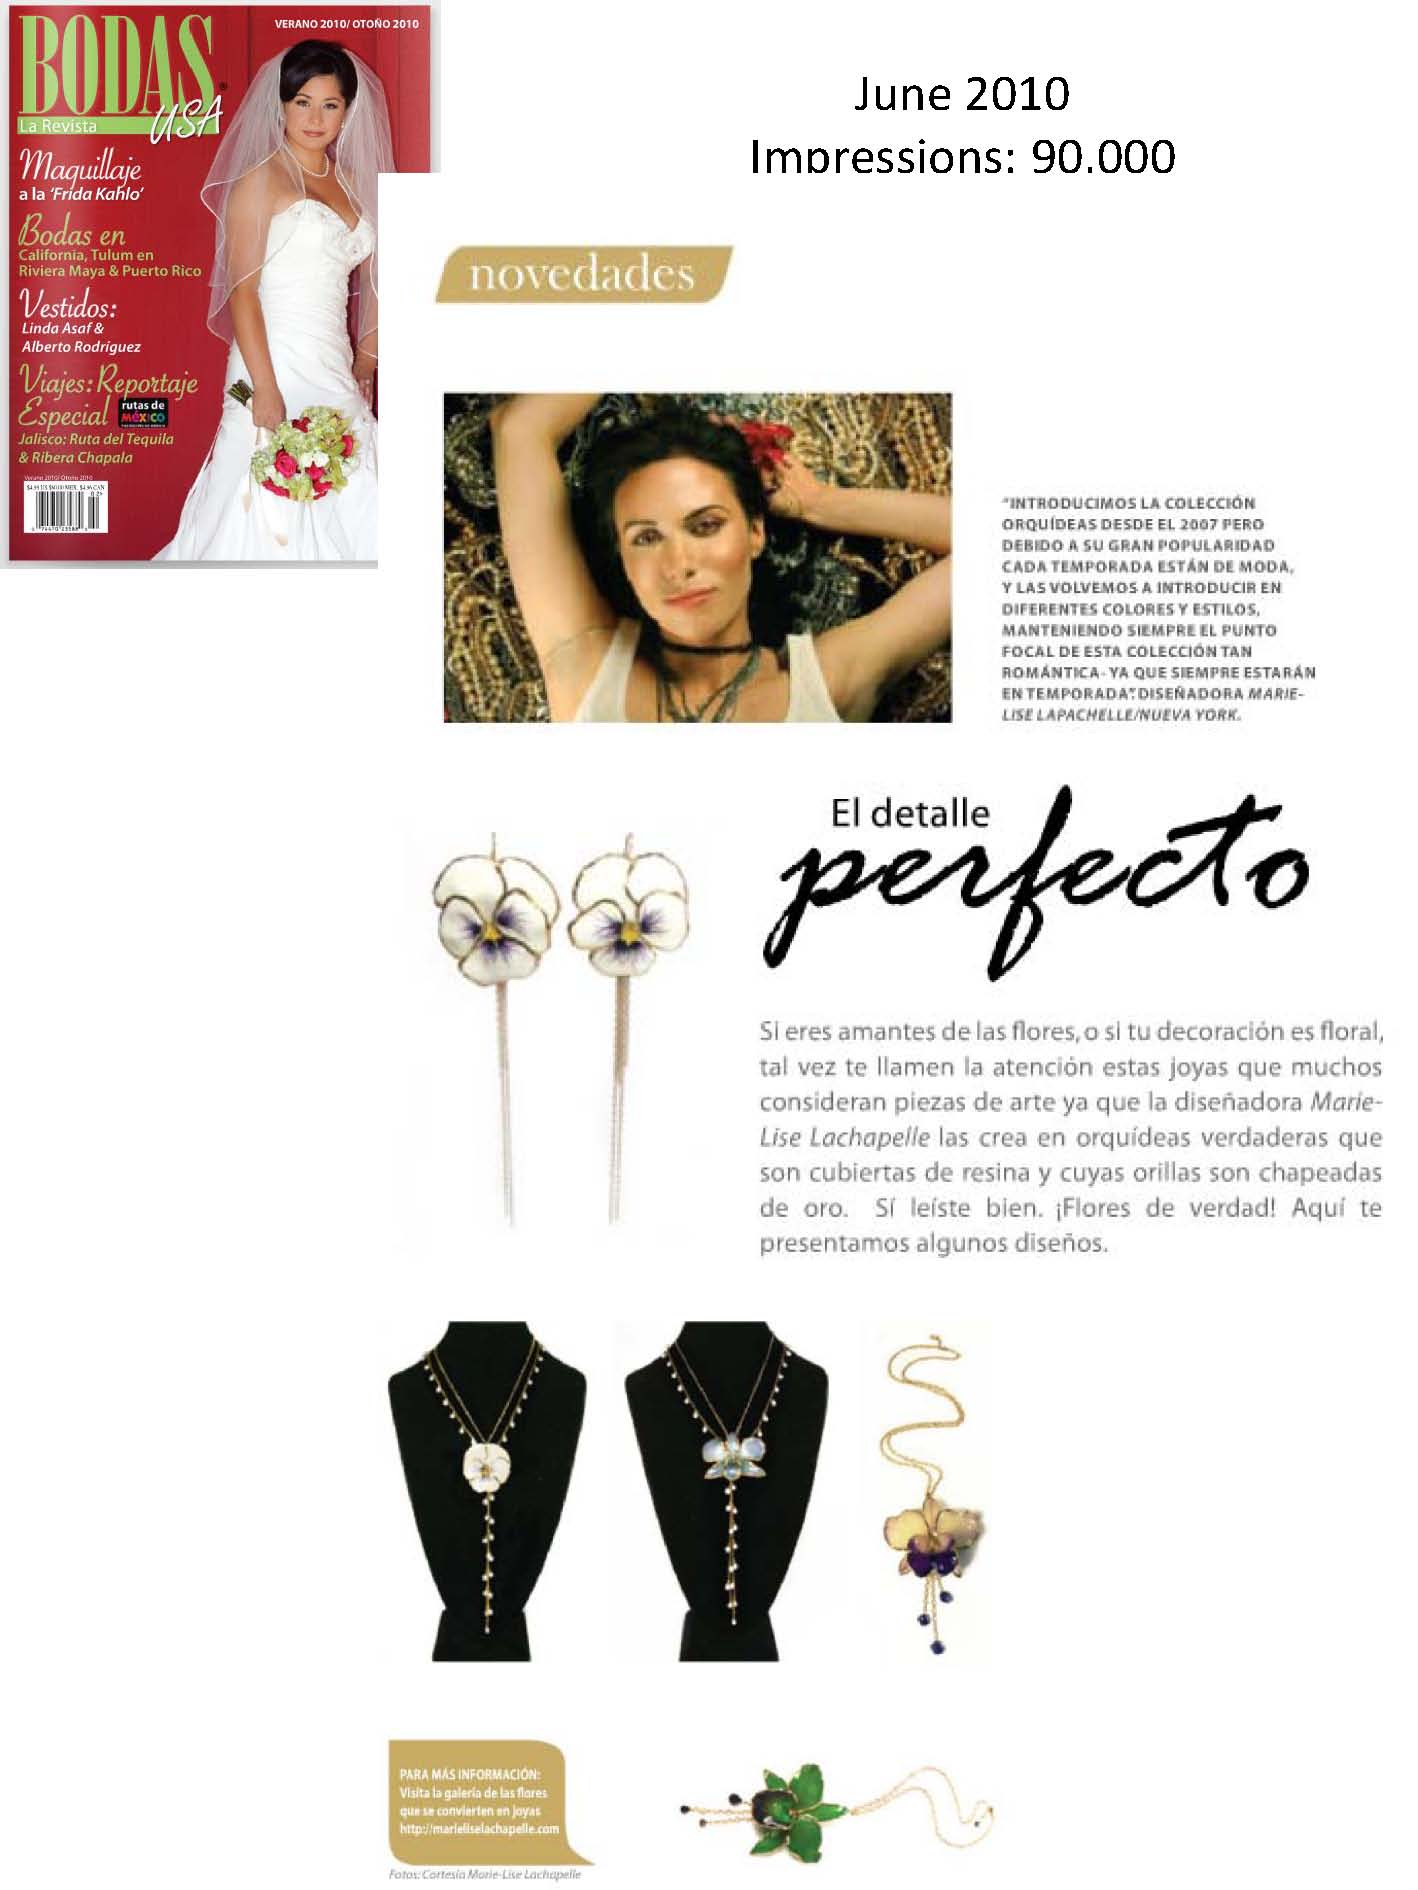 Marie-Lise Lachapelle's Gorgeous Jewelry Receives a 1-Page Spread in Bodas USA Bridal Magazine (Fashion PR)